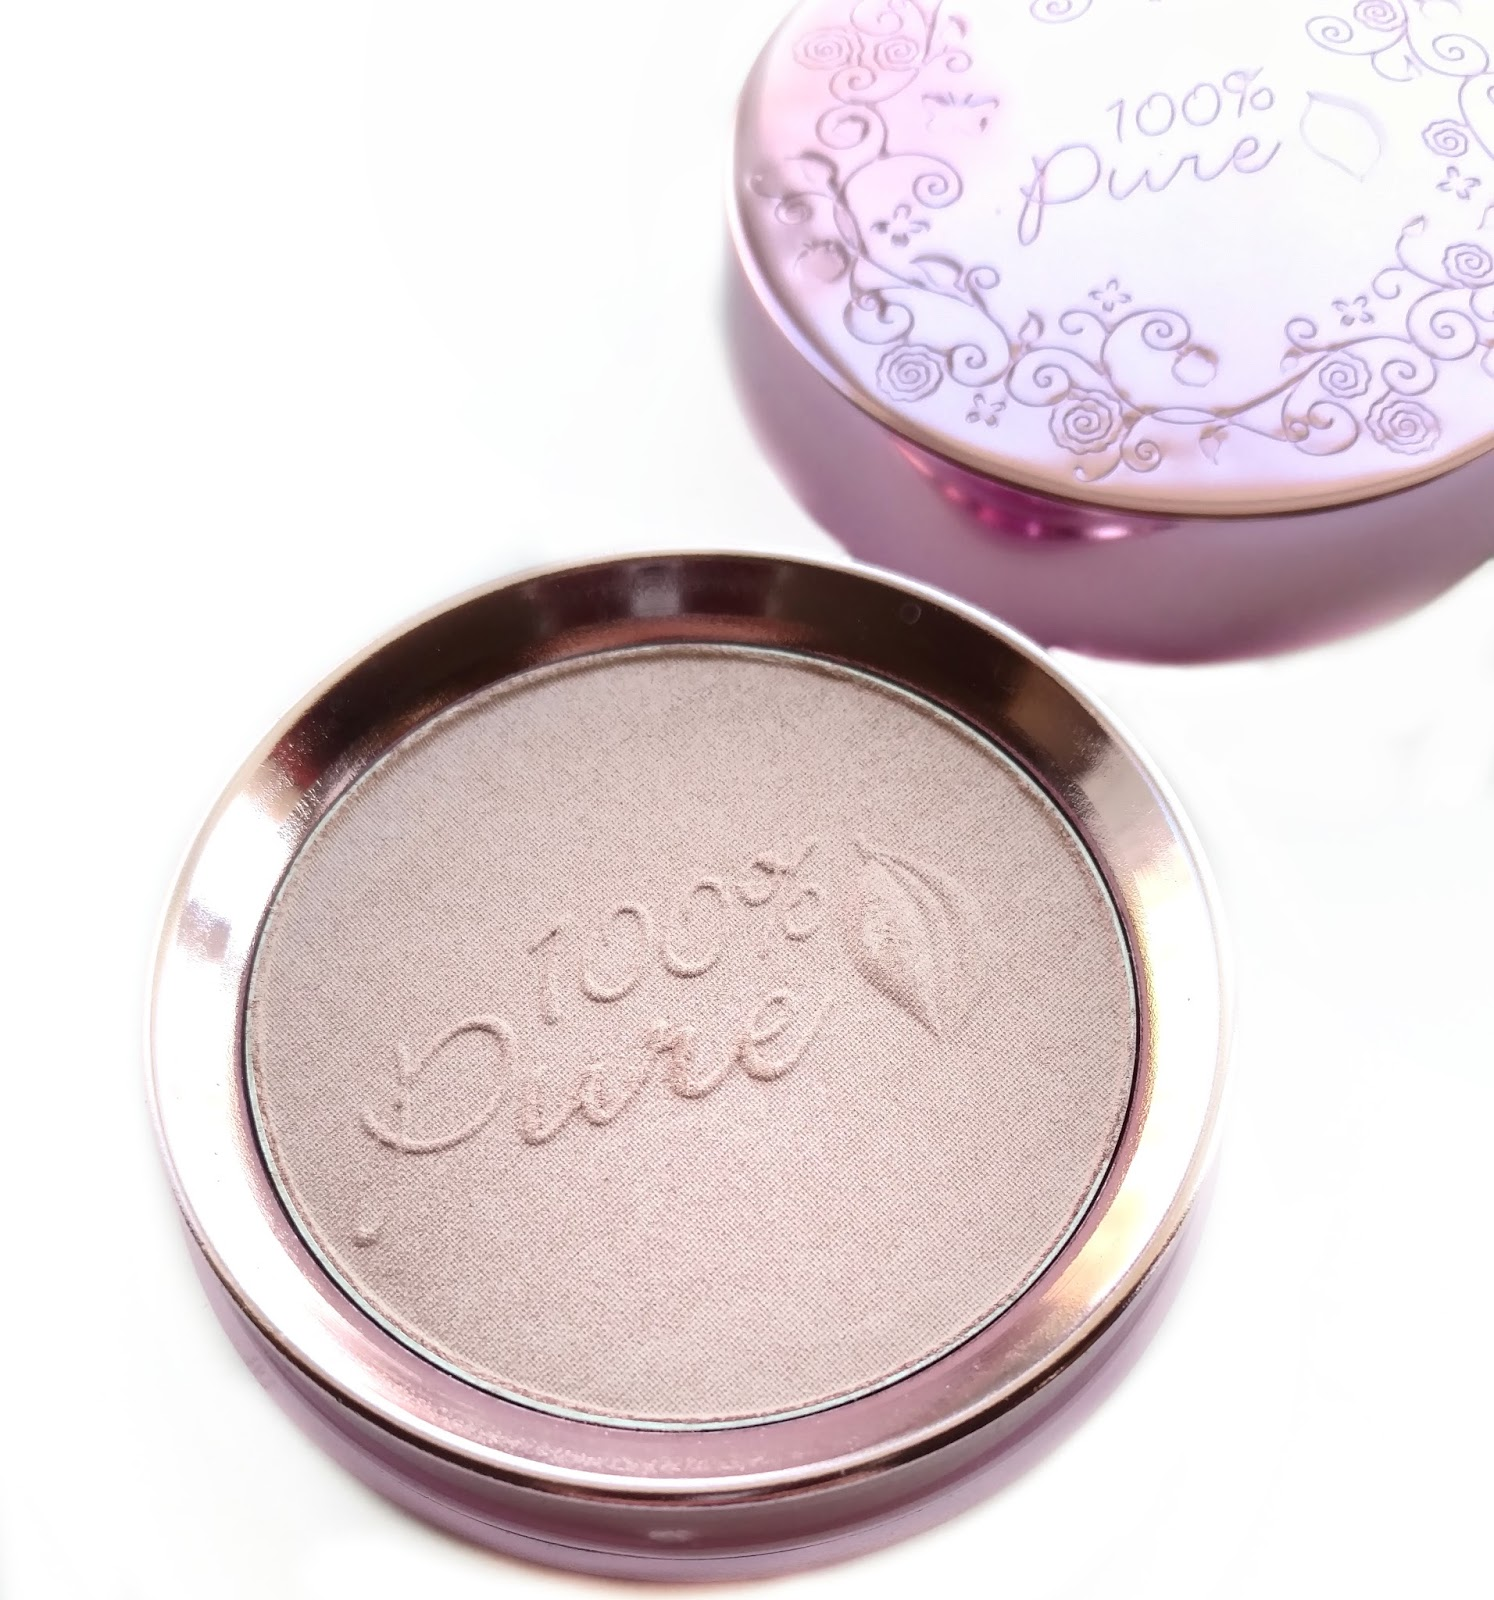 100% Pure Gemmed Luminizer in Moonstone Glow Review